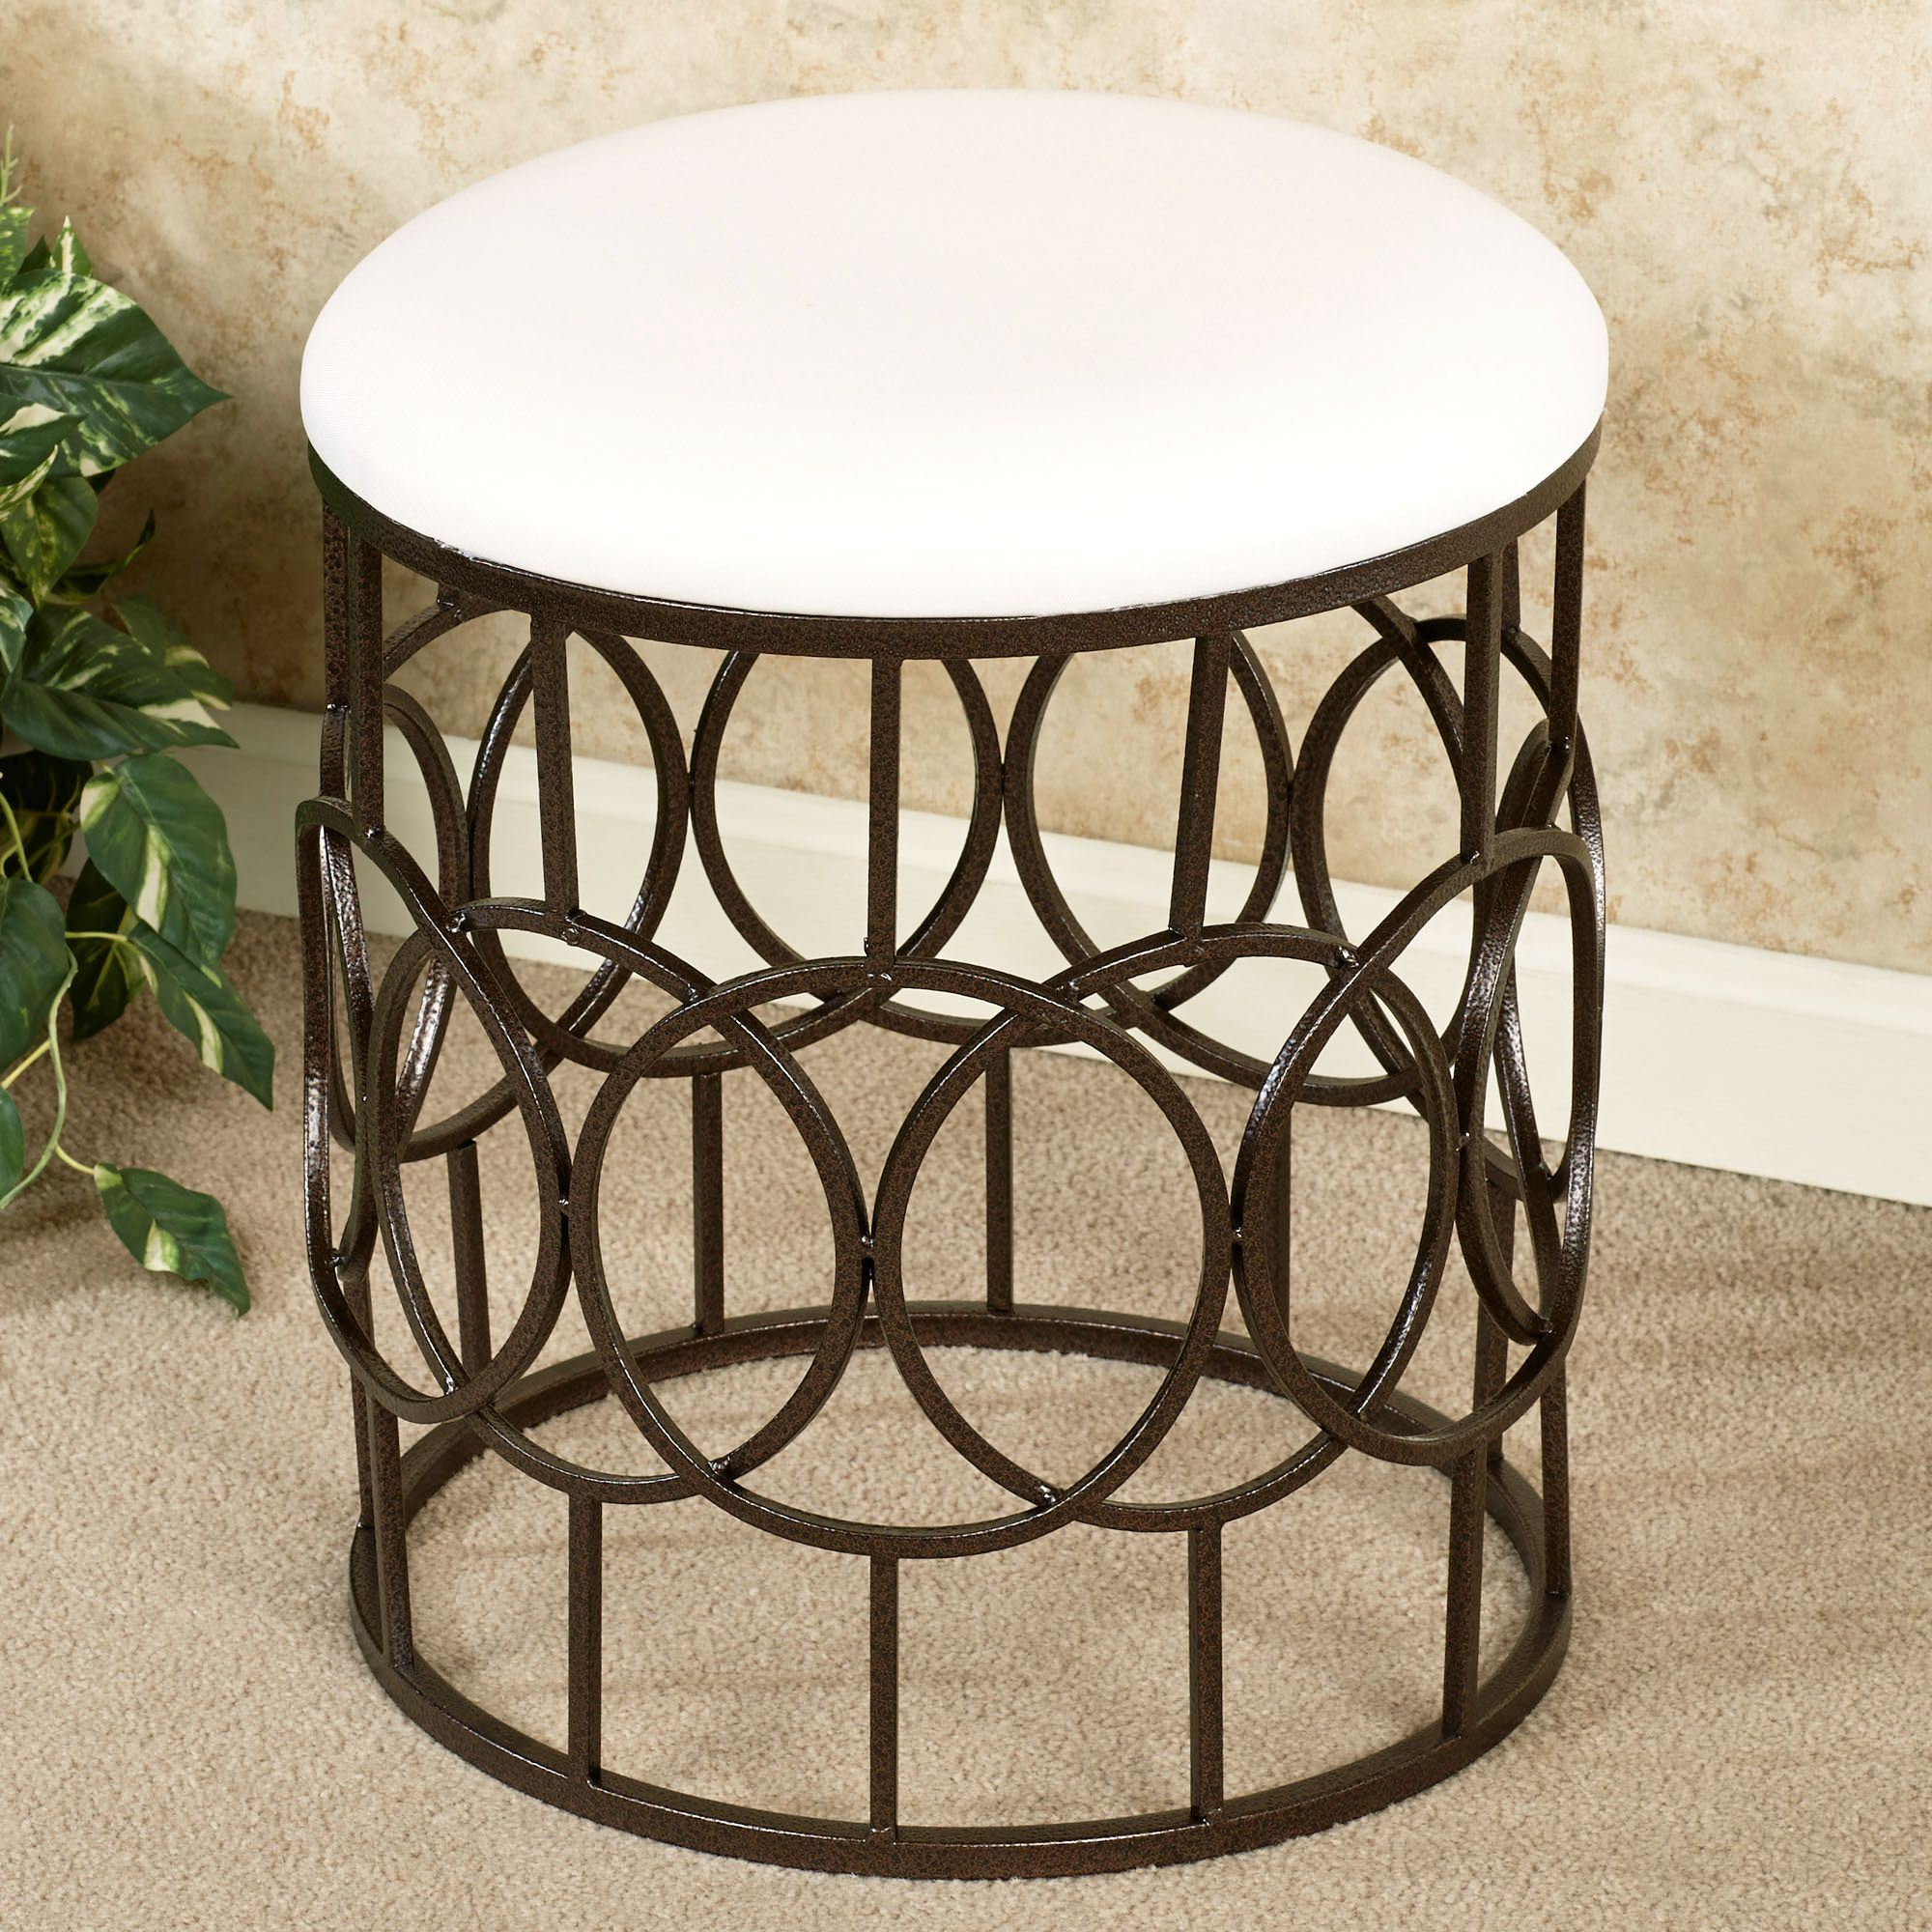 Swell Reign Round Upholstered Metal Vanity Stool Gmtry Best Dining Table And Chair Ideas Images Gmtryco